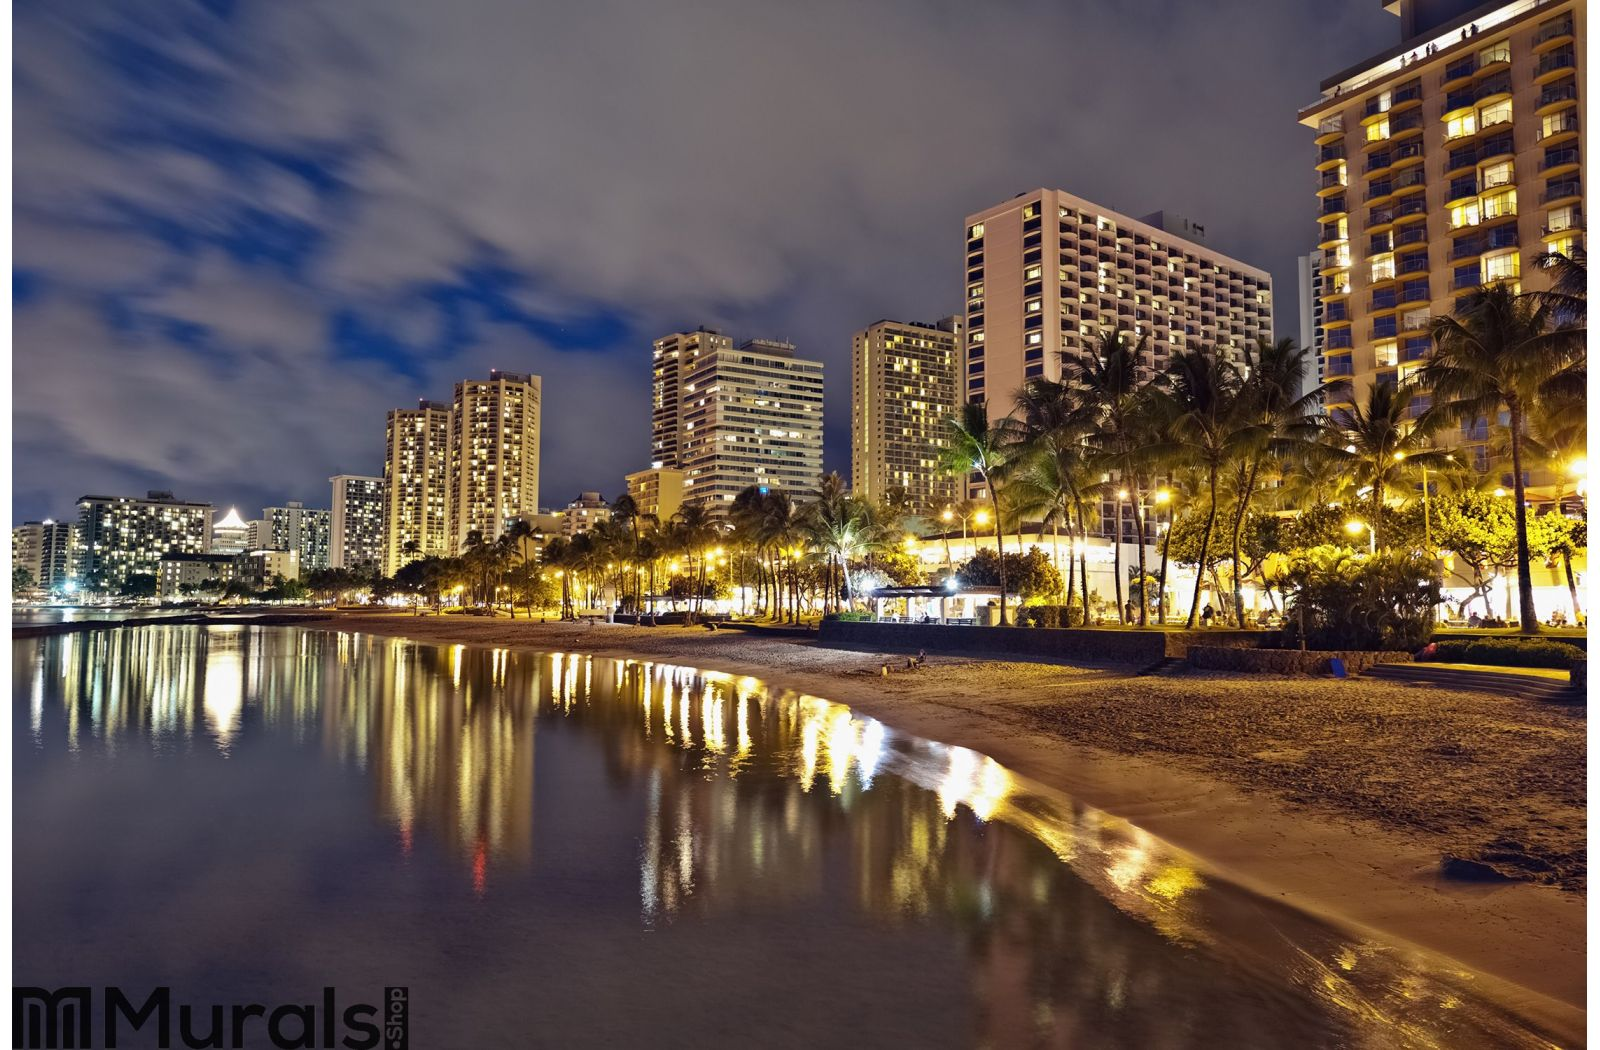 Waikiki beach oahu hawaii cityscape sunset wall mural for Cityscape murals photo wall mural